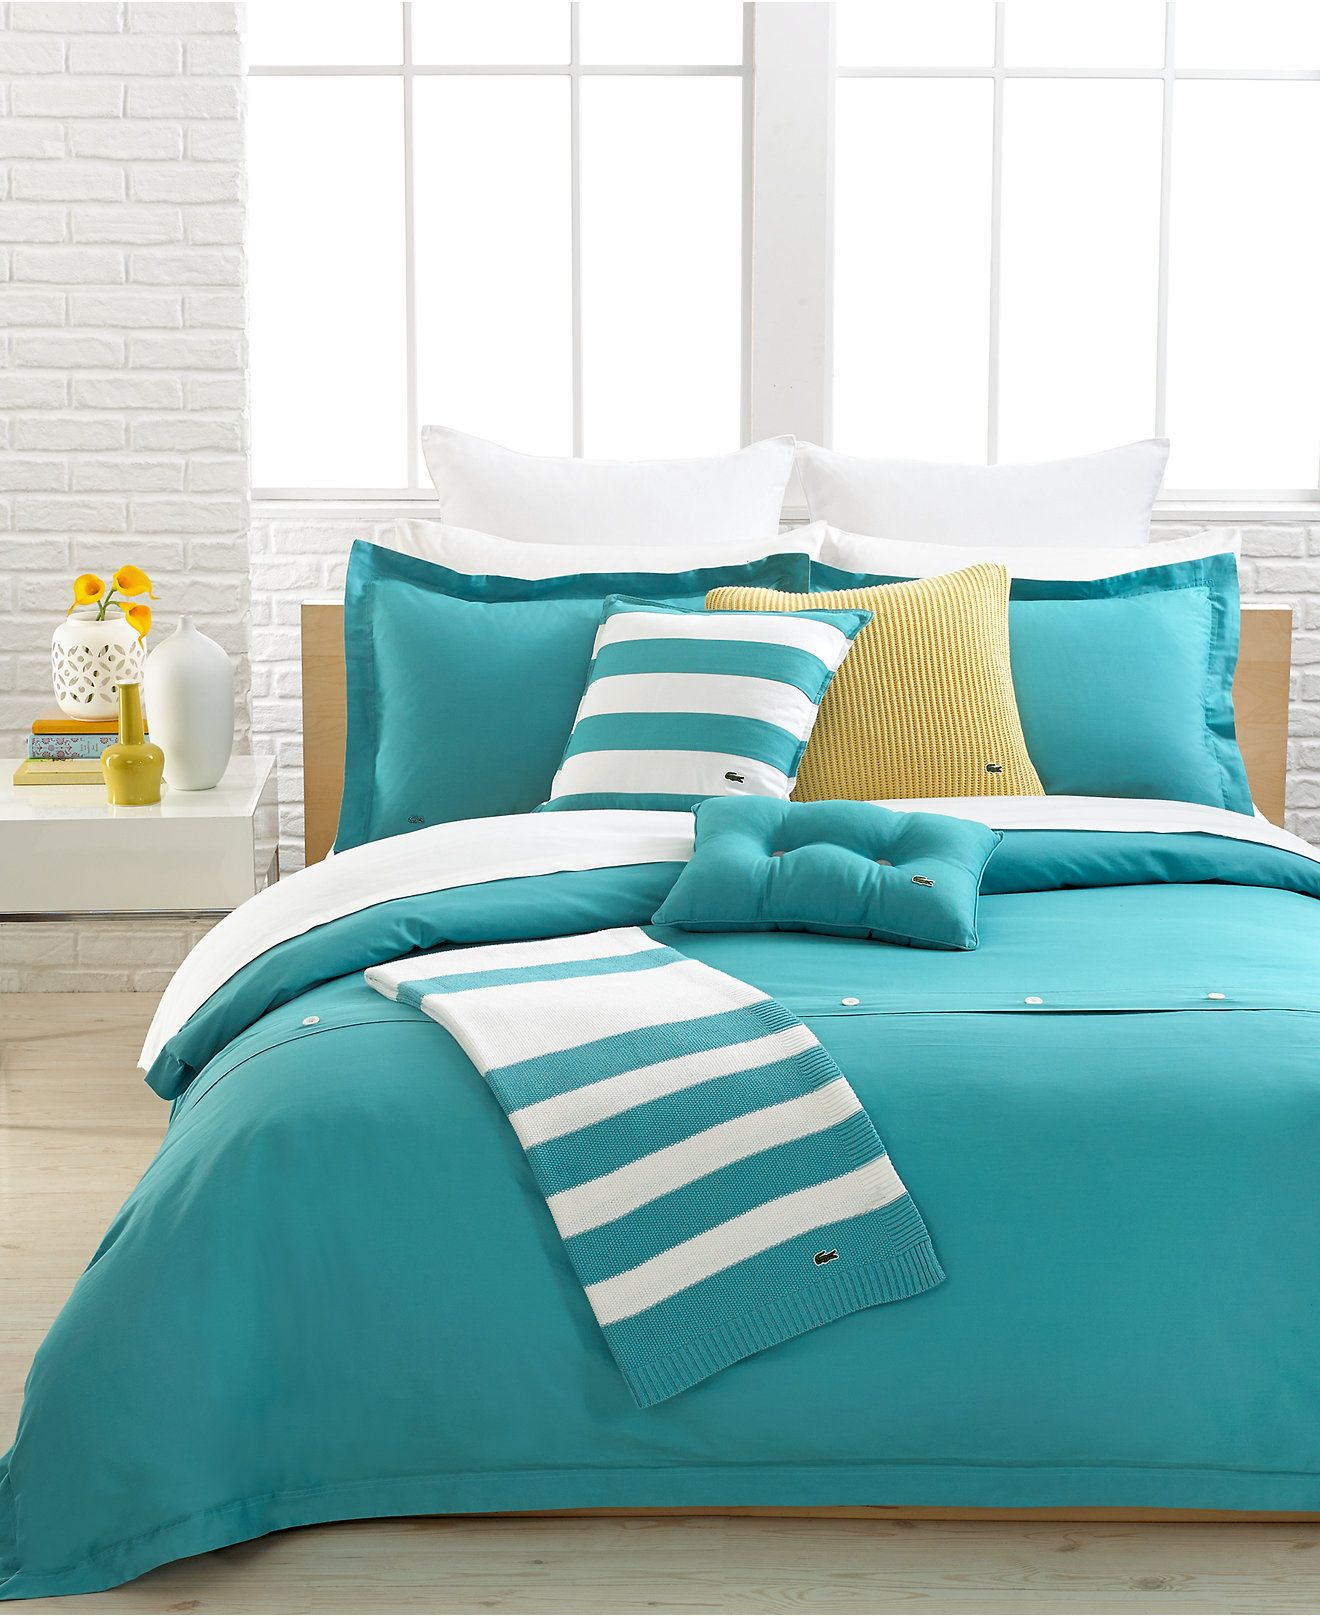 bedrooms incredible comforter attractive cover purple on pinterest property images for best lacoste queen duvet decor sets